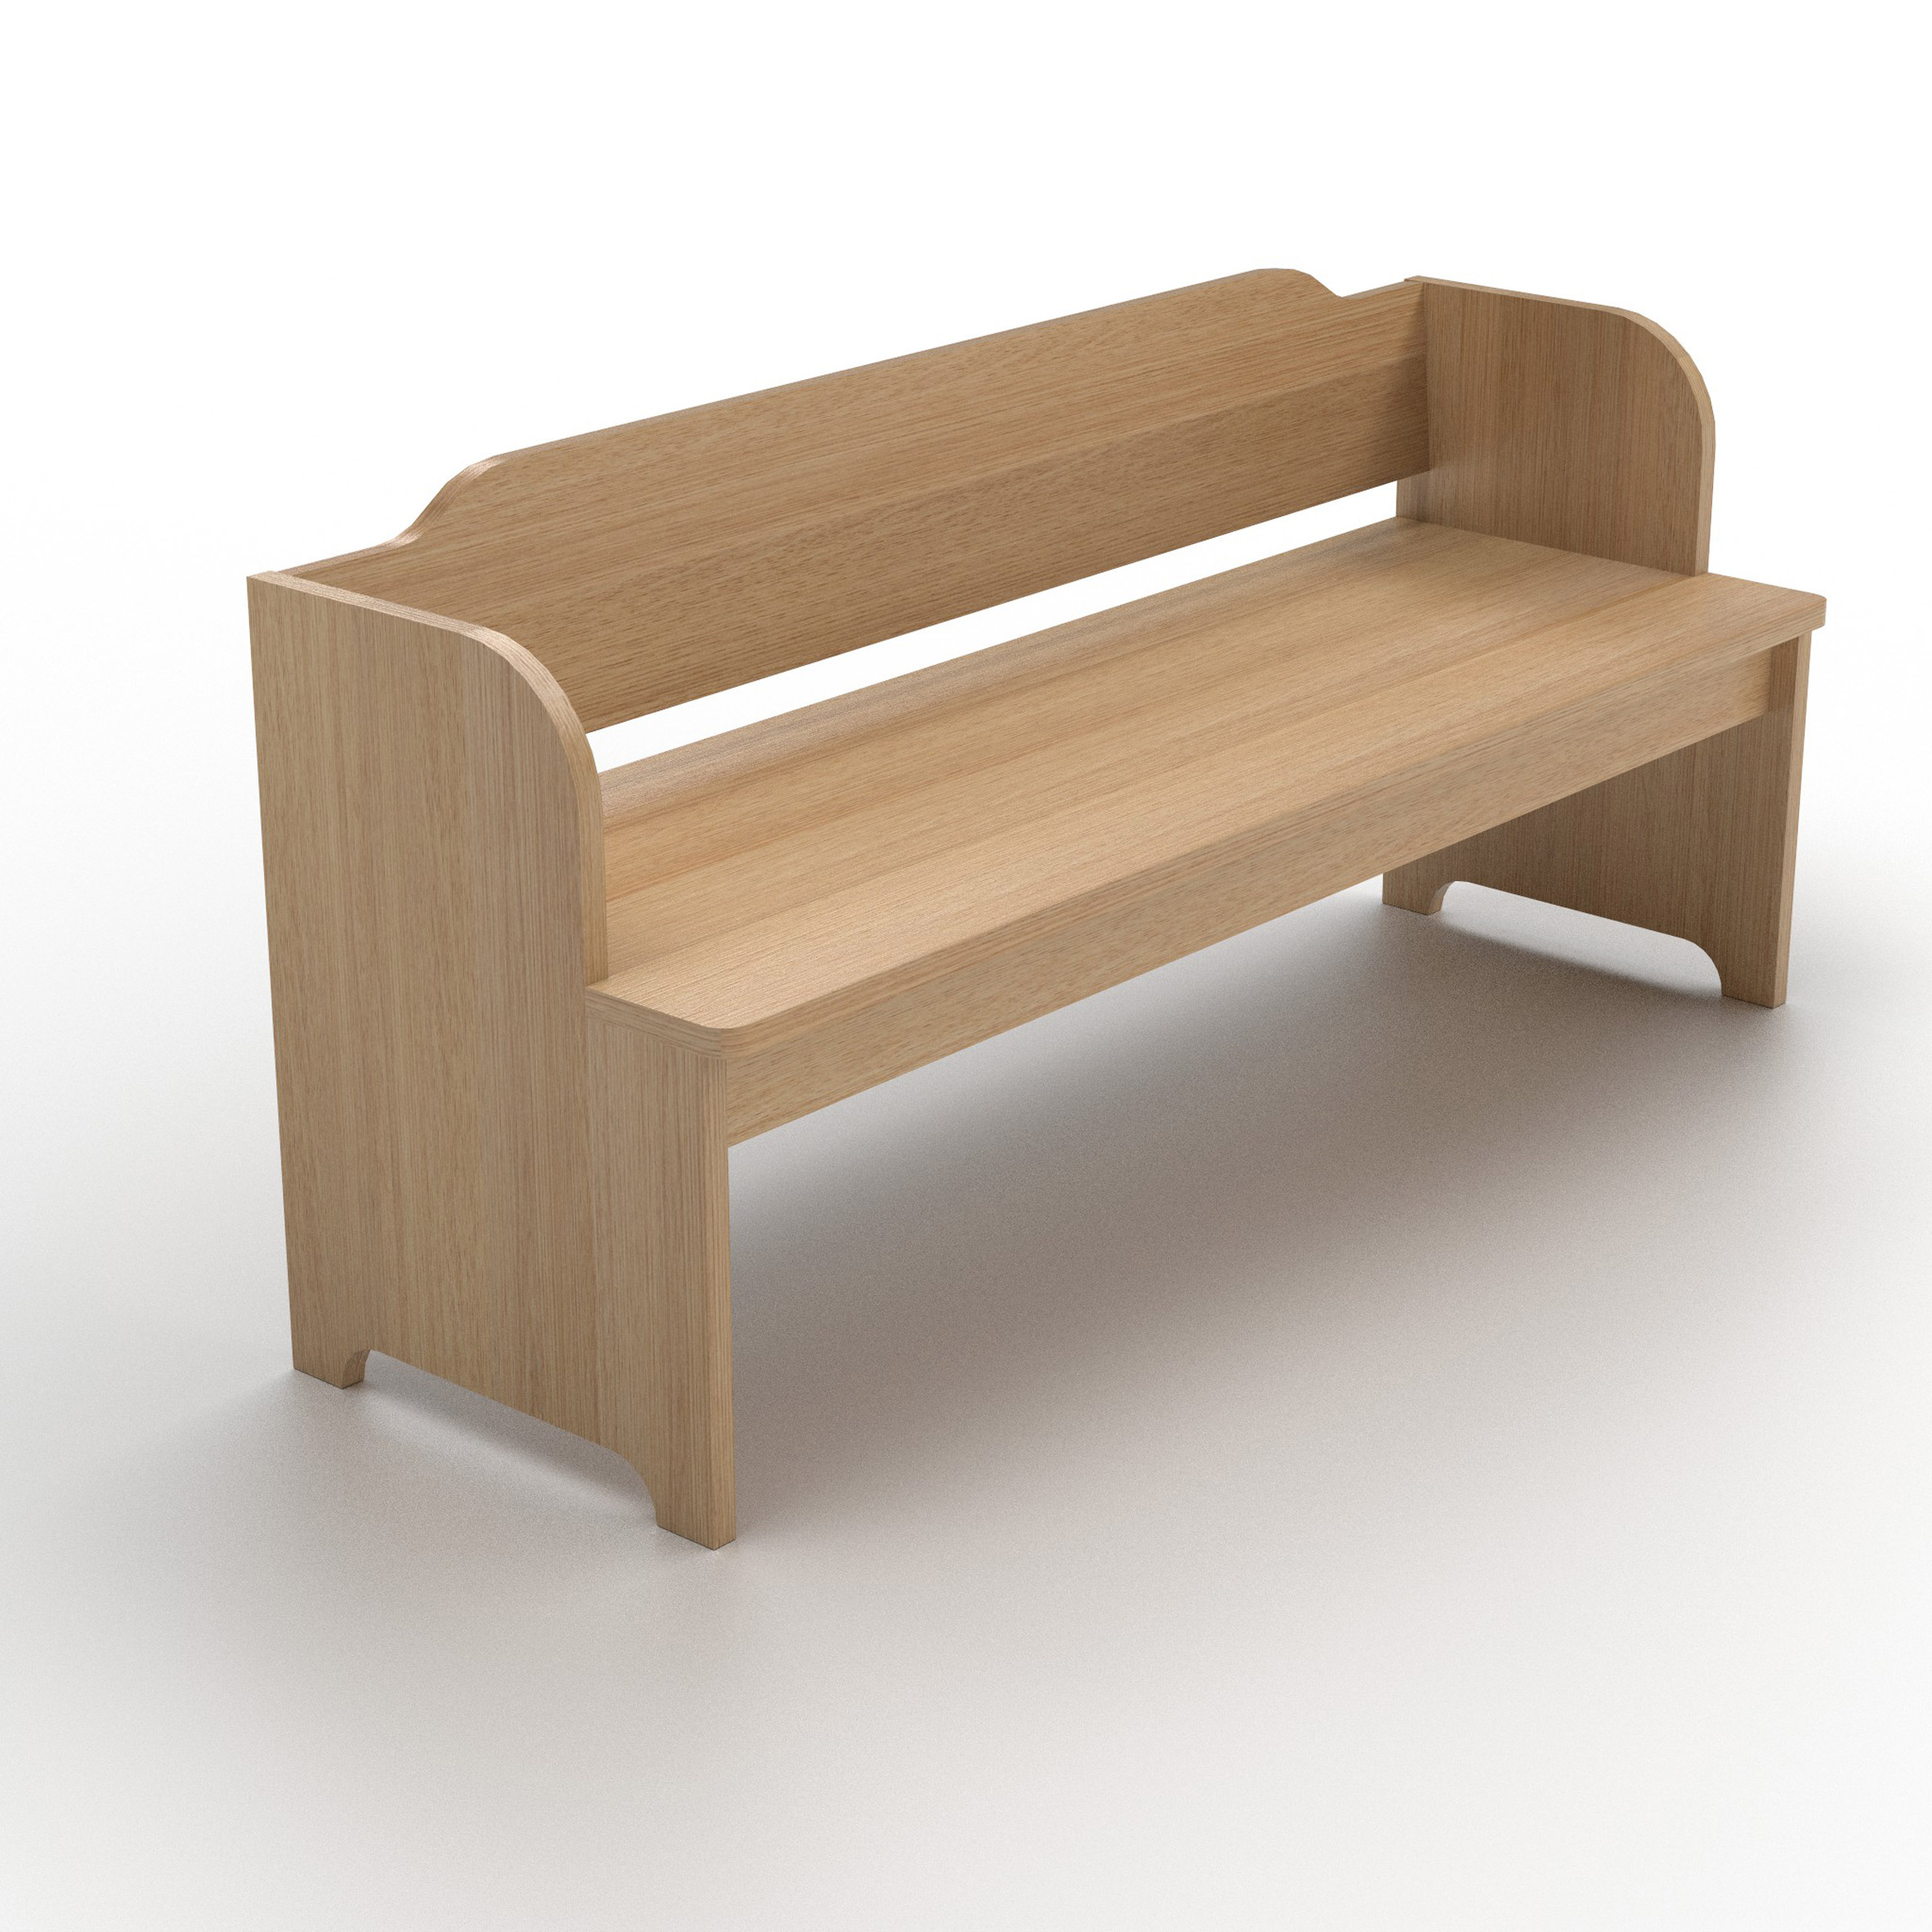 Settle bench as part of Modern Farmhouse collection for Another Country